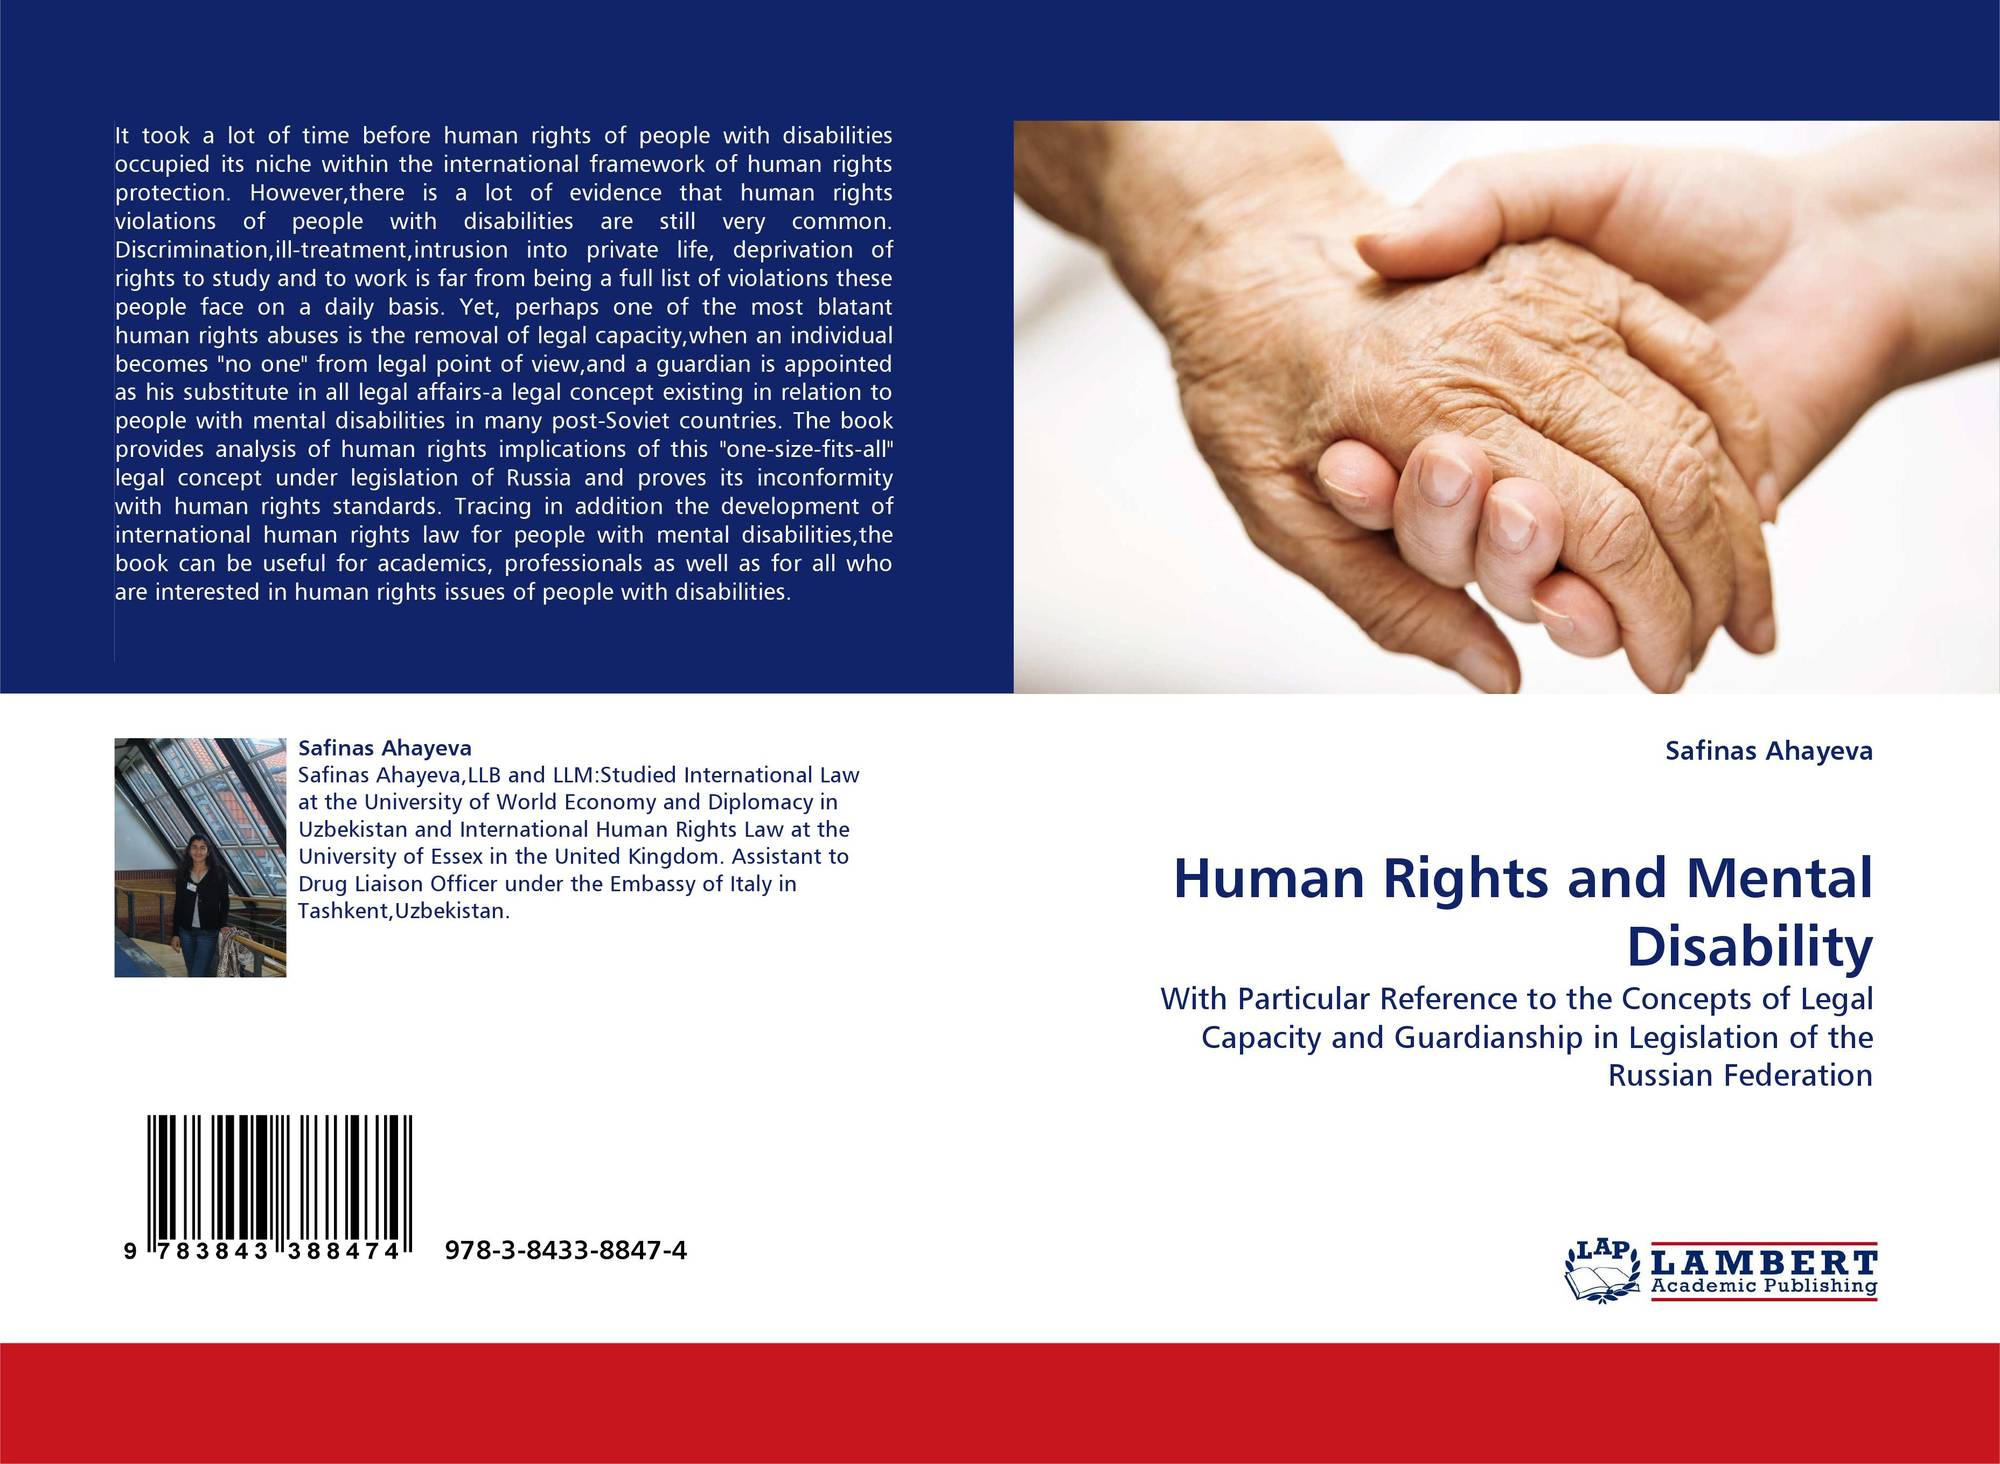 an analysis of human rights